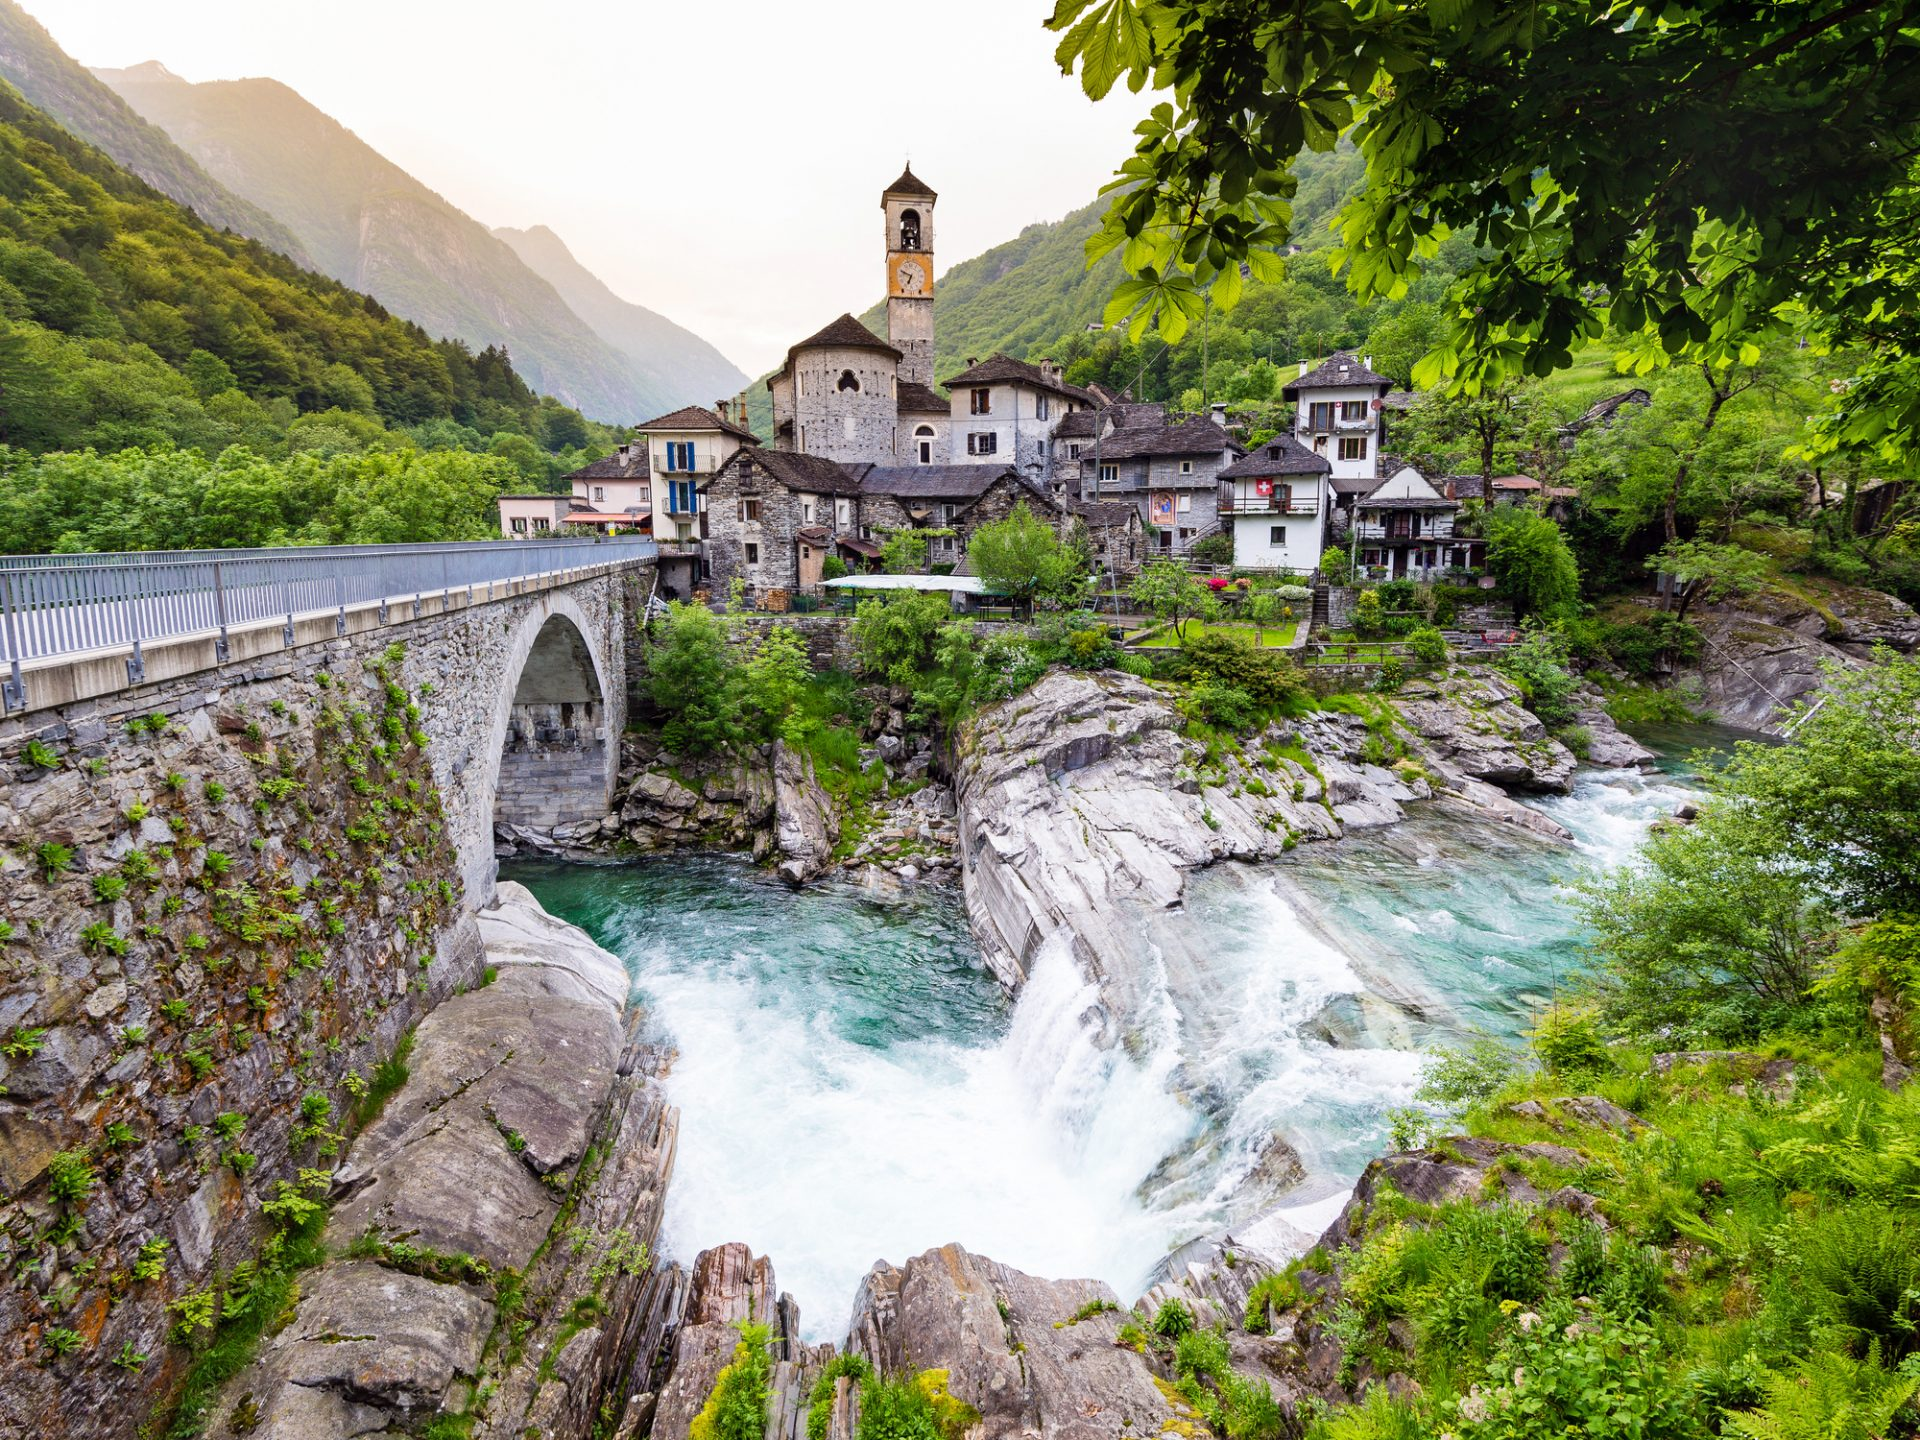 Lavertezzo in Valle Verzasca, Canton Ticino, Switzerland